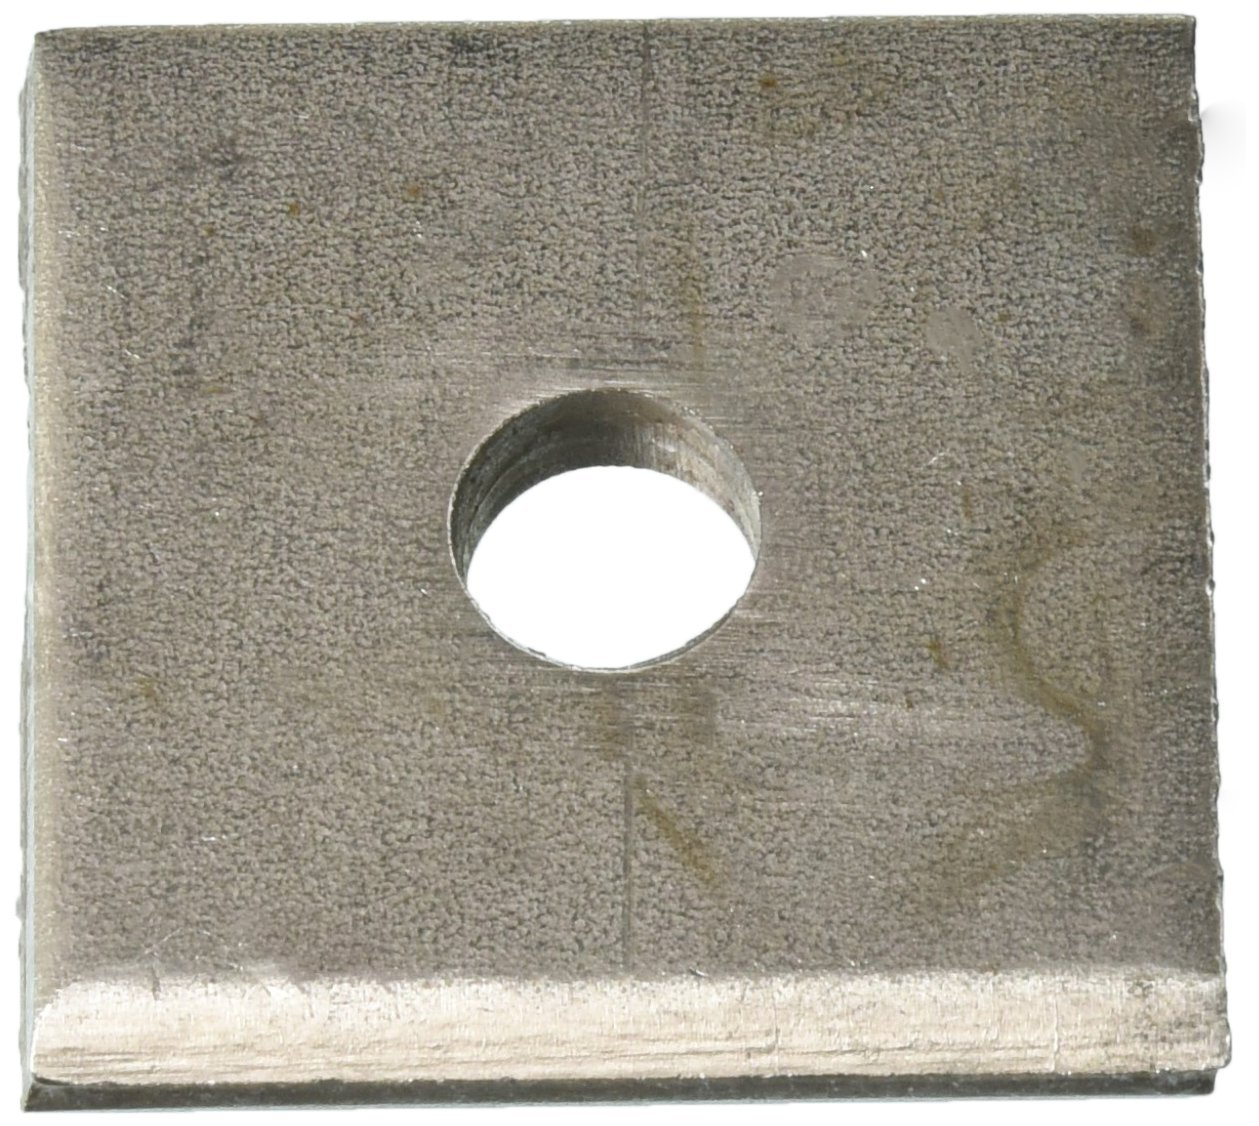 VERSABAR VF-1101-3/8SS6 Square Washer 3/8'' Clearance Stainless Steel 316 by VERSABAR